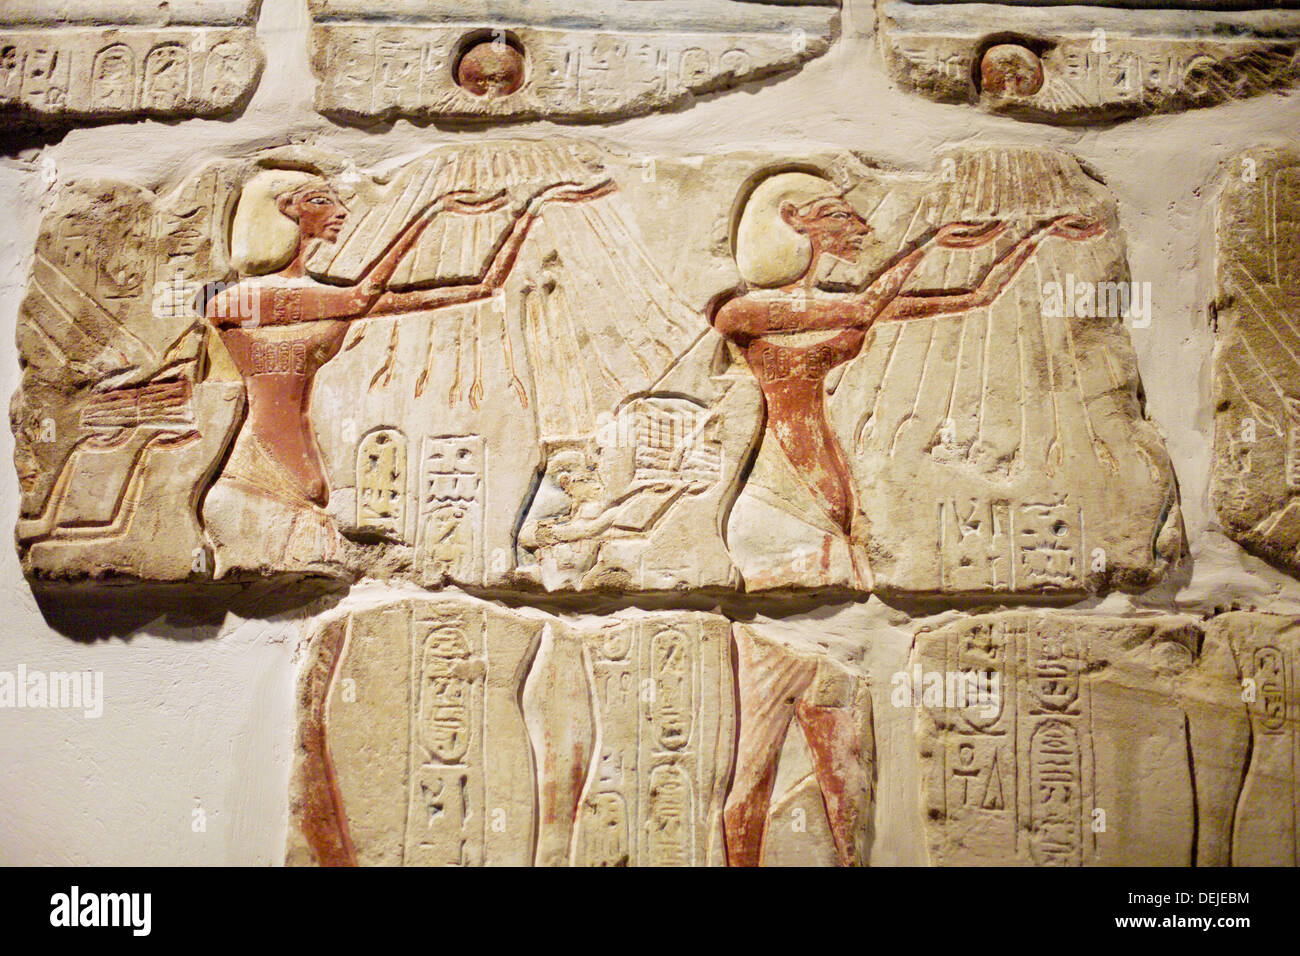 Detail of the Talatat Wall, a reconstructed wall from a temple of Amenhotep IV in the Luxor Museum. Egypt - Stock Image